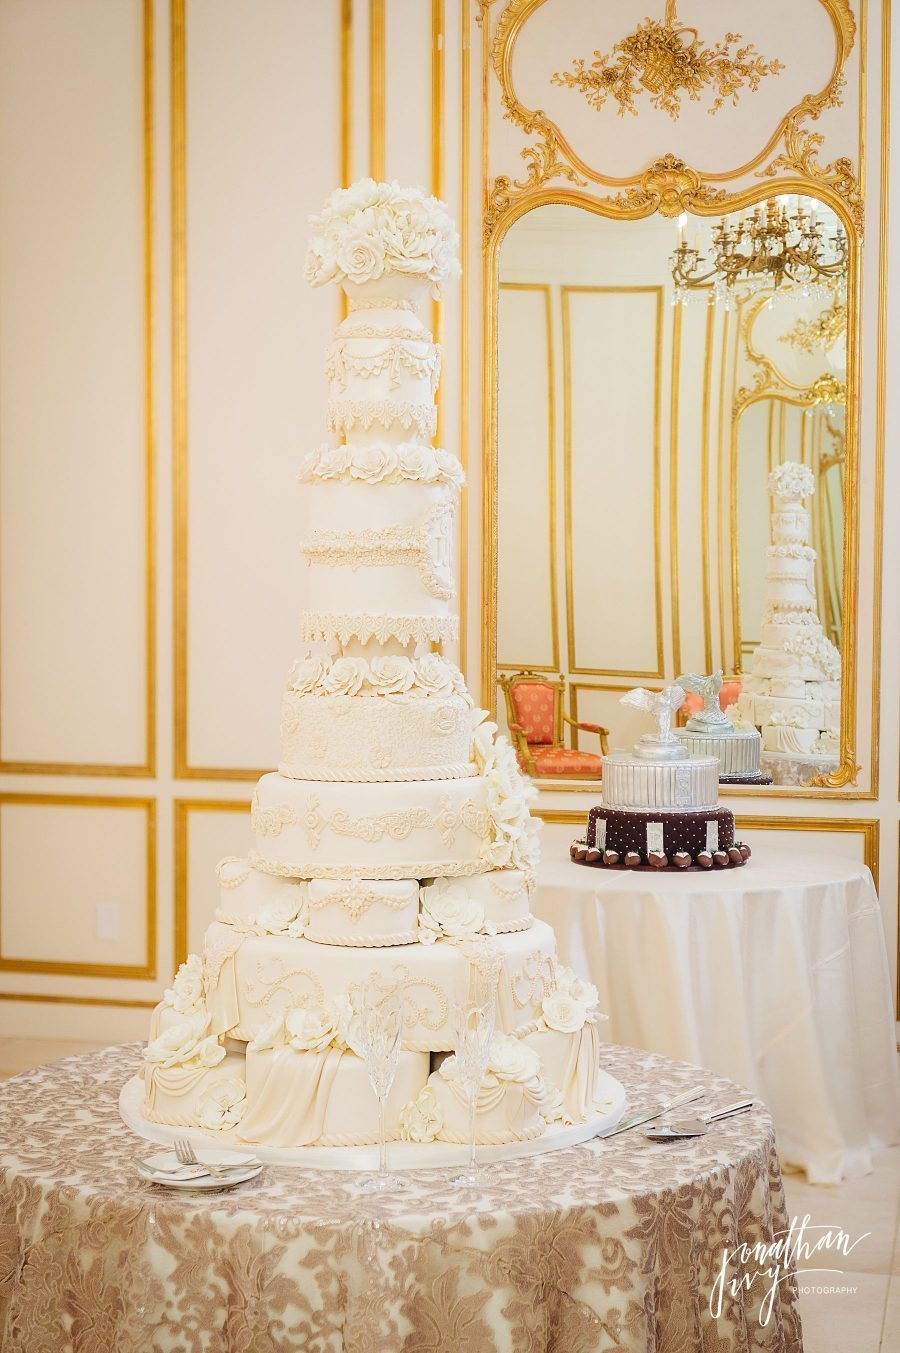 Edible Designs by Jessie Wedding Cake Chateau Cocomar